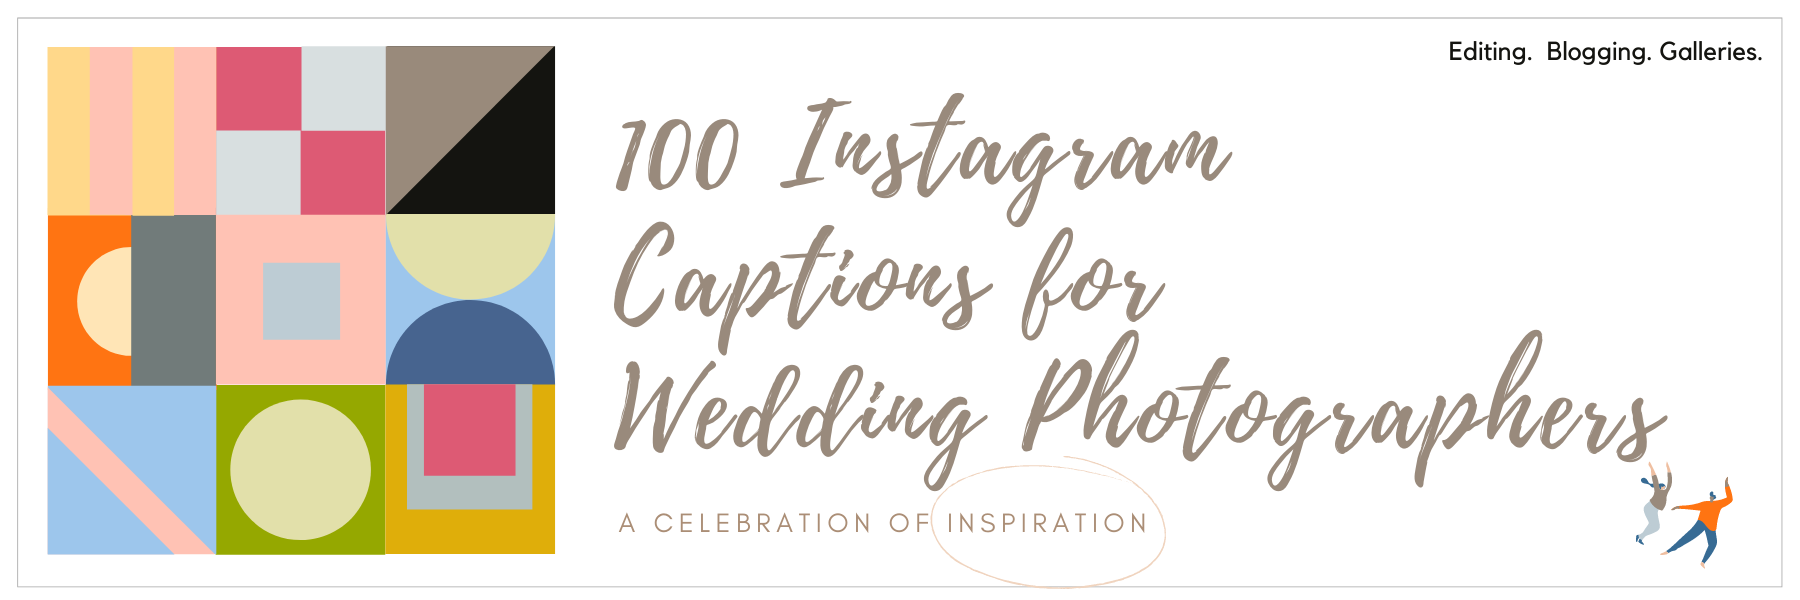 100 Instagram Captions for Wedding Photographers